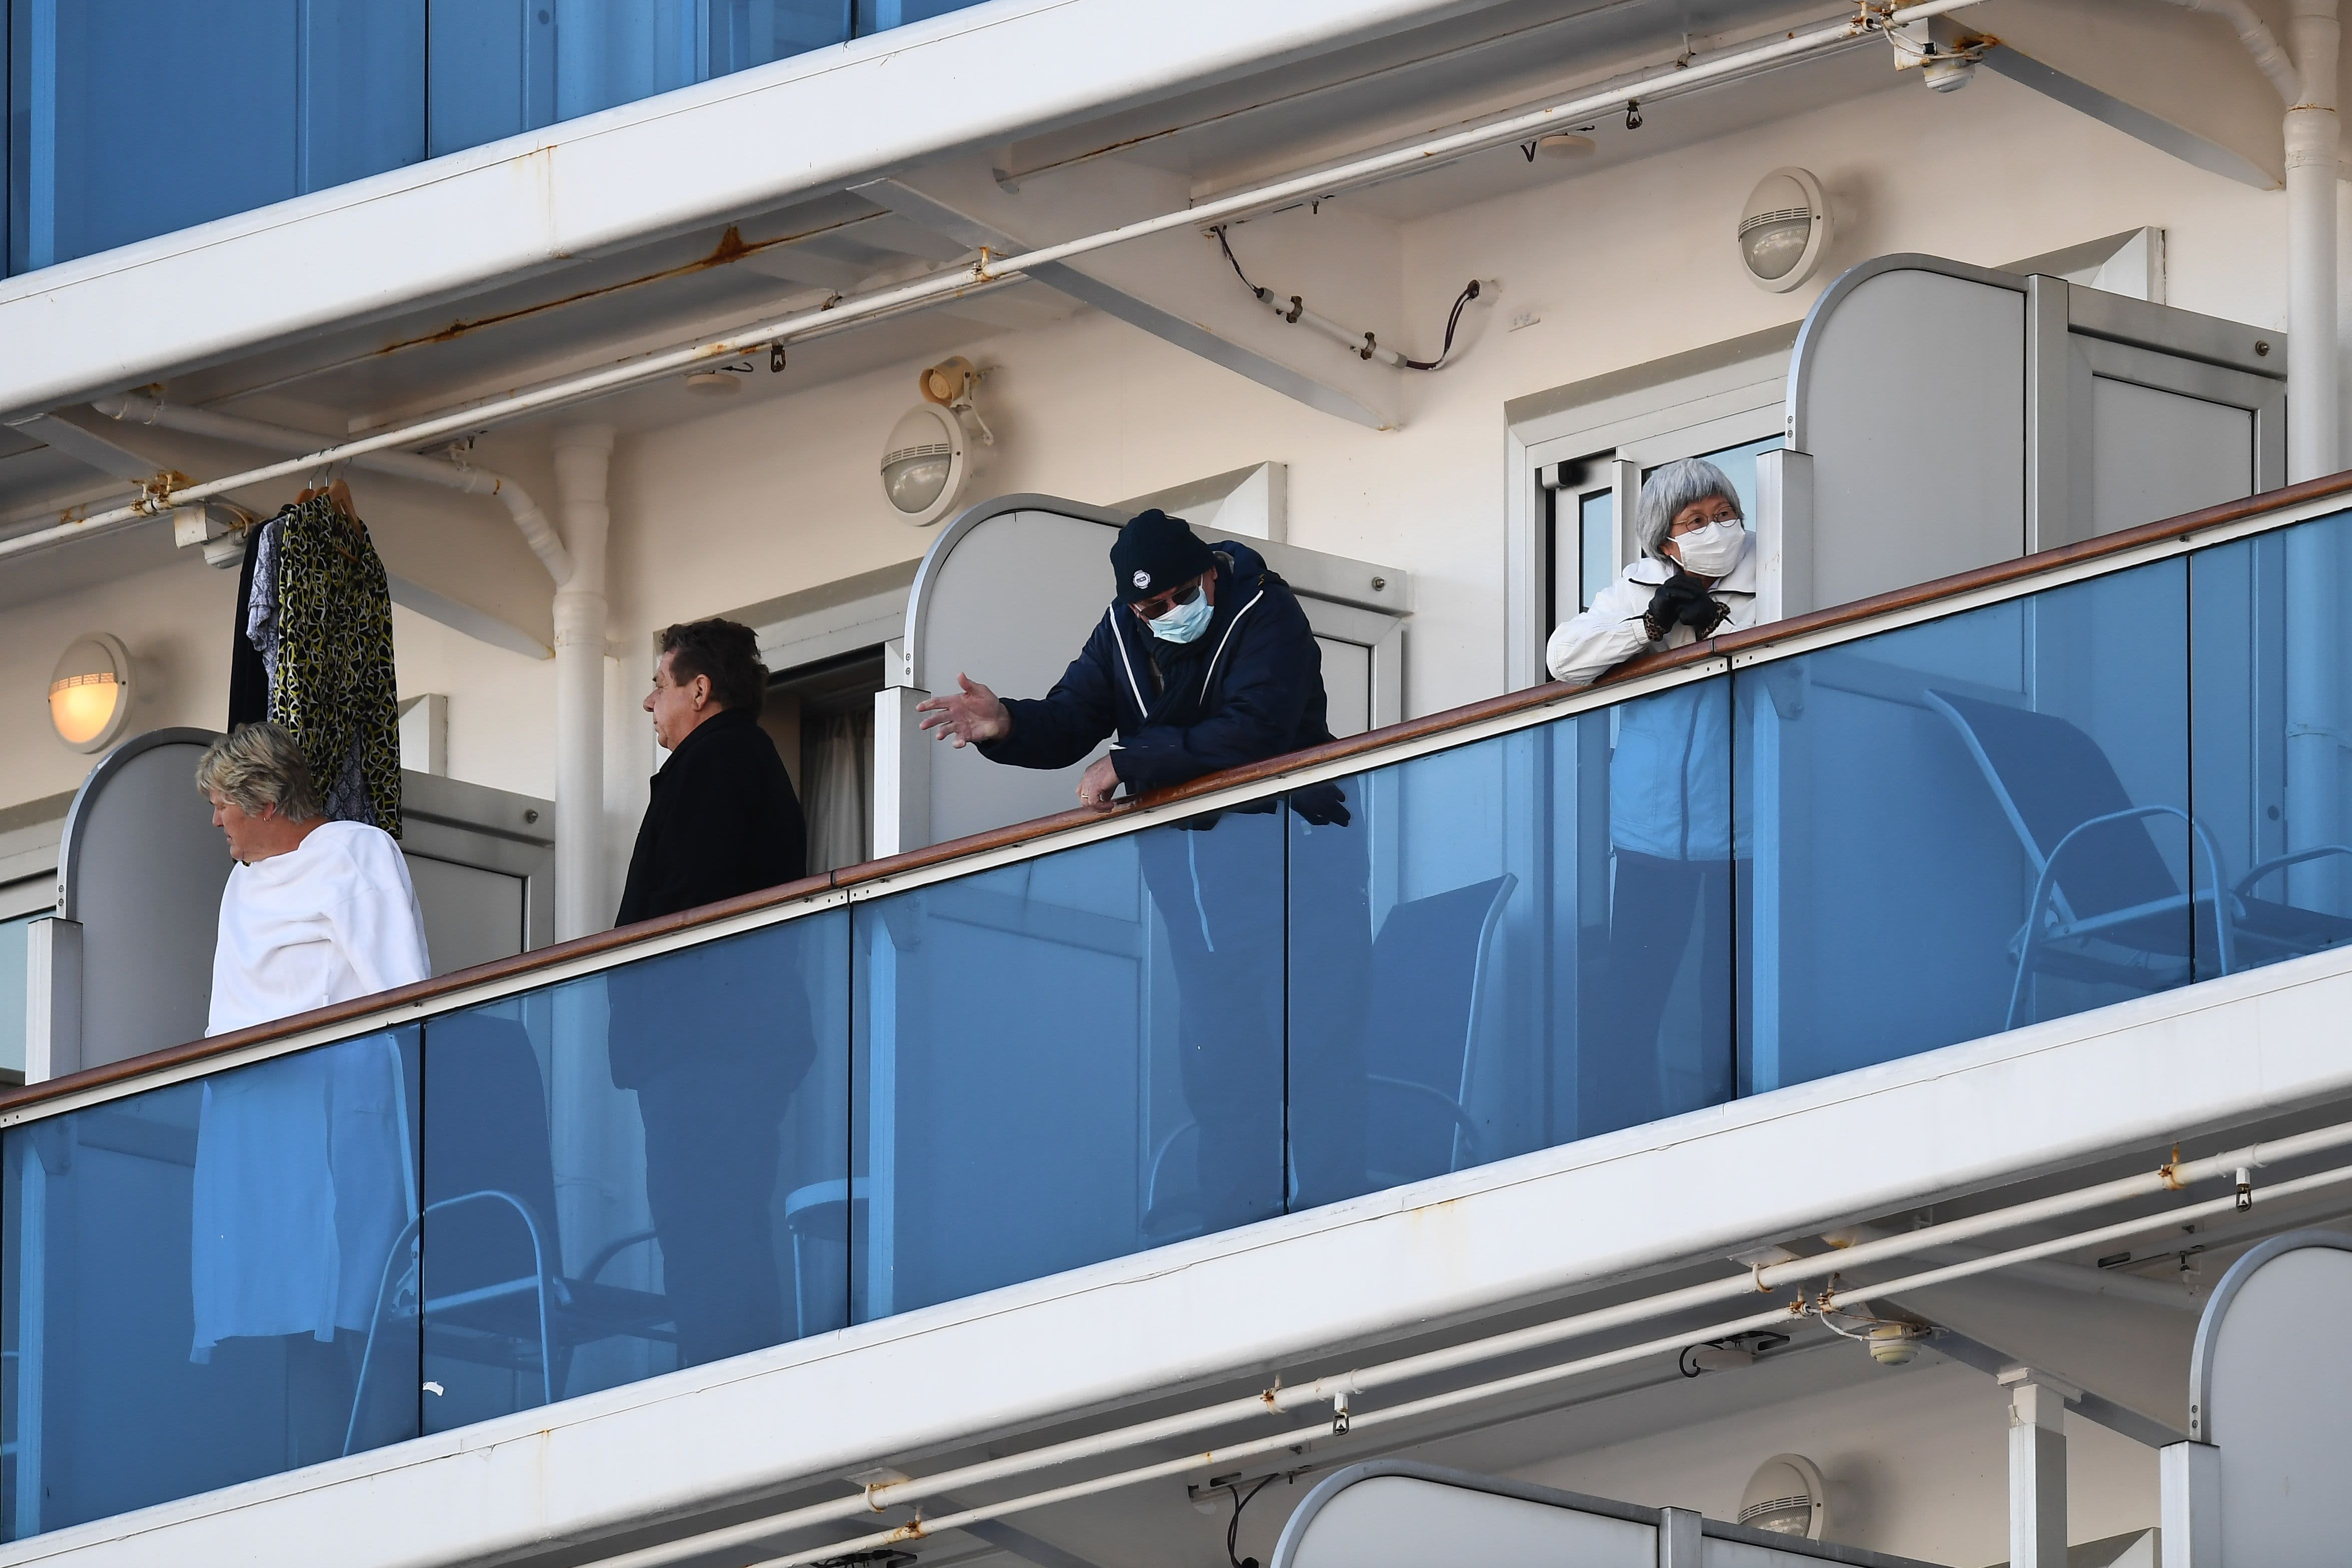 'Imagine being trapped in your bathroom' — what it's like on coronavirus-quarantined cruise ship